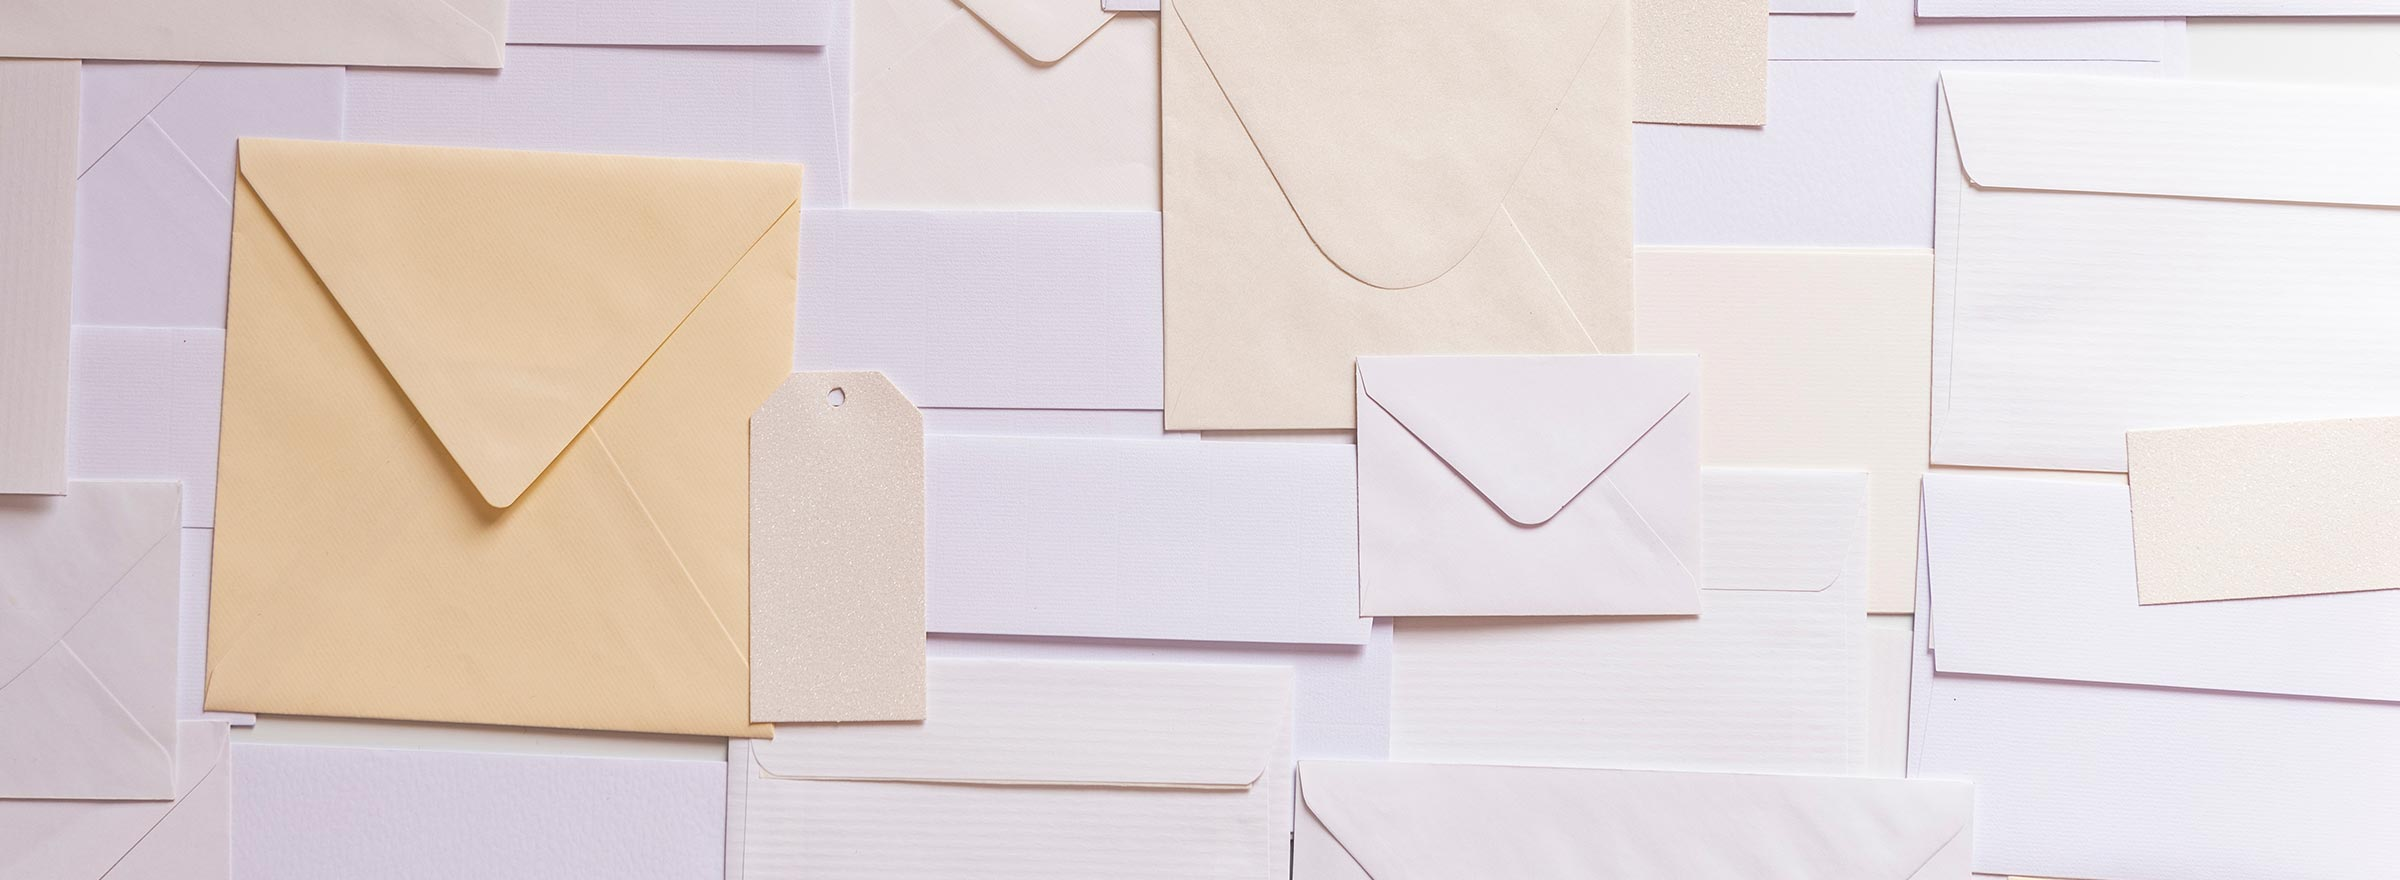 many envelopes of different sizes, representing email marketing for nonprofits